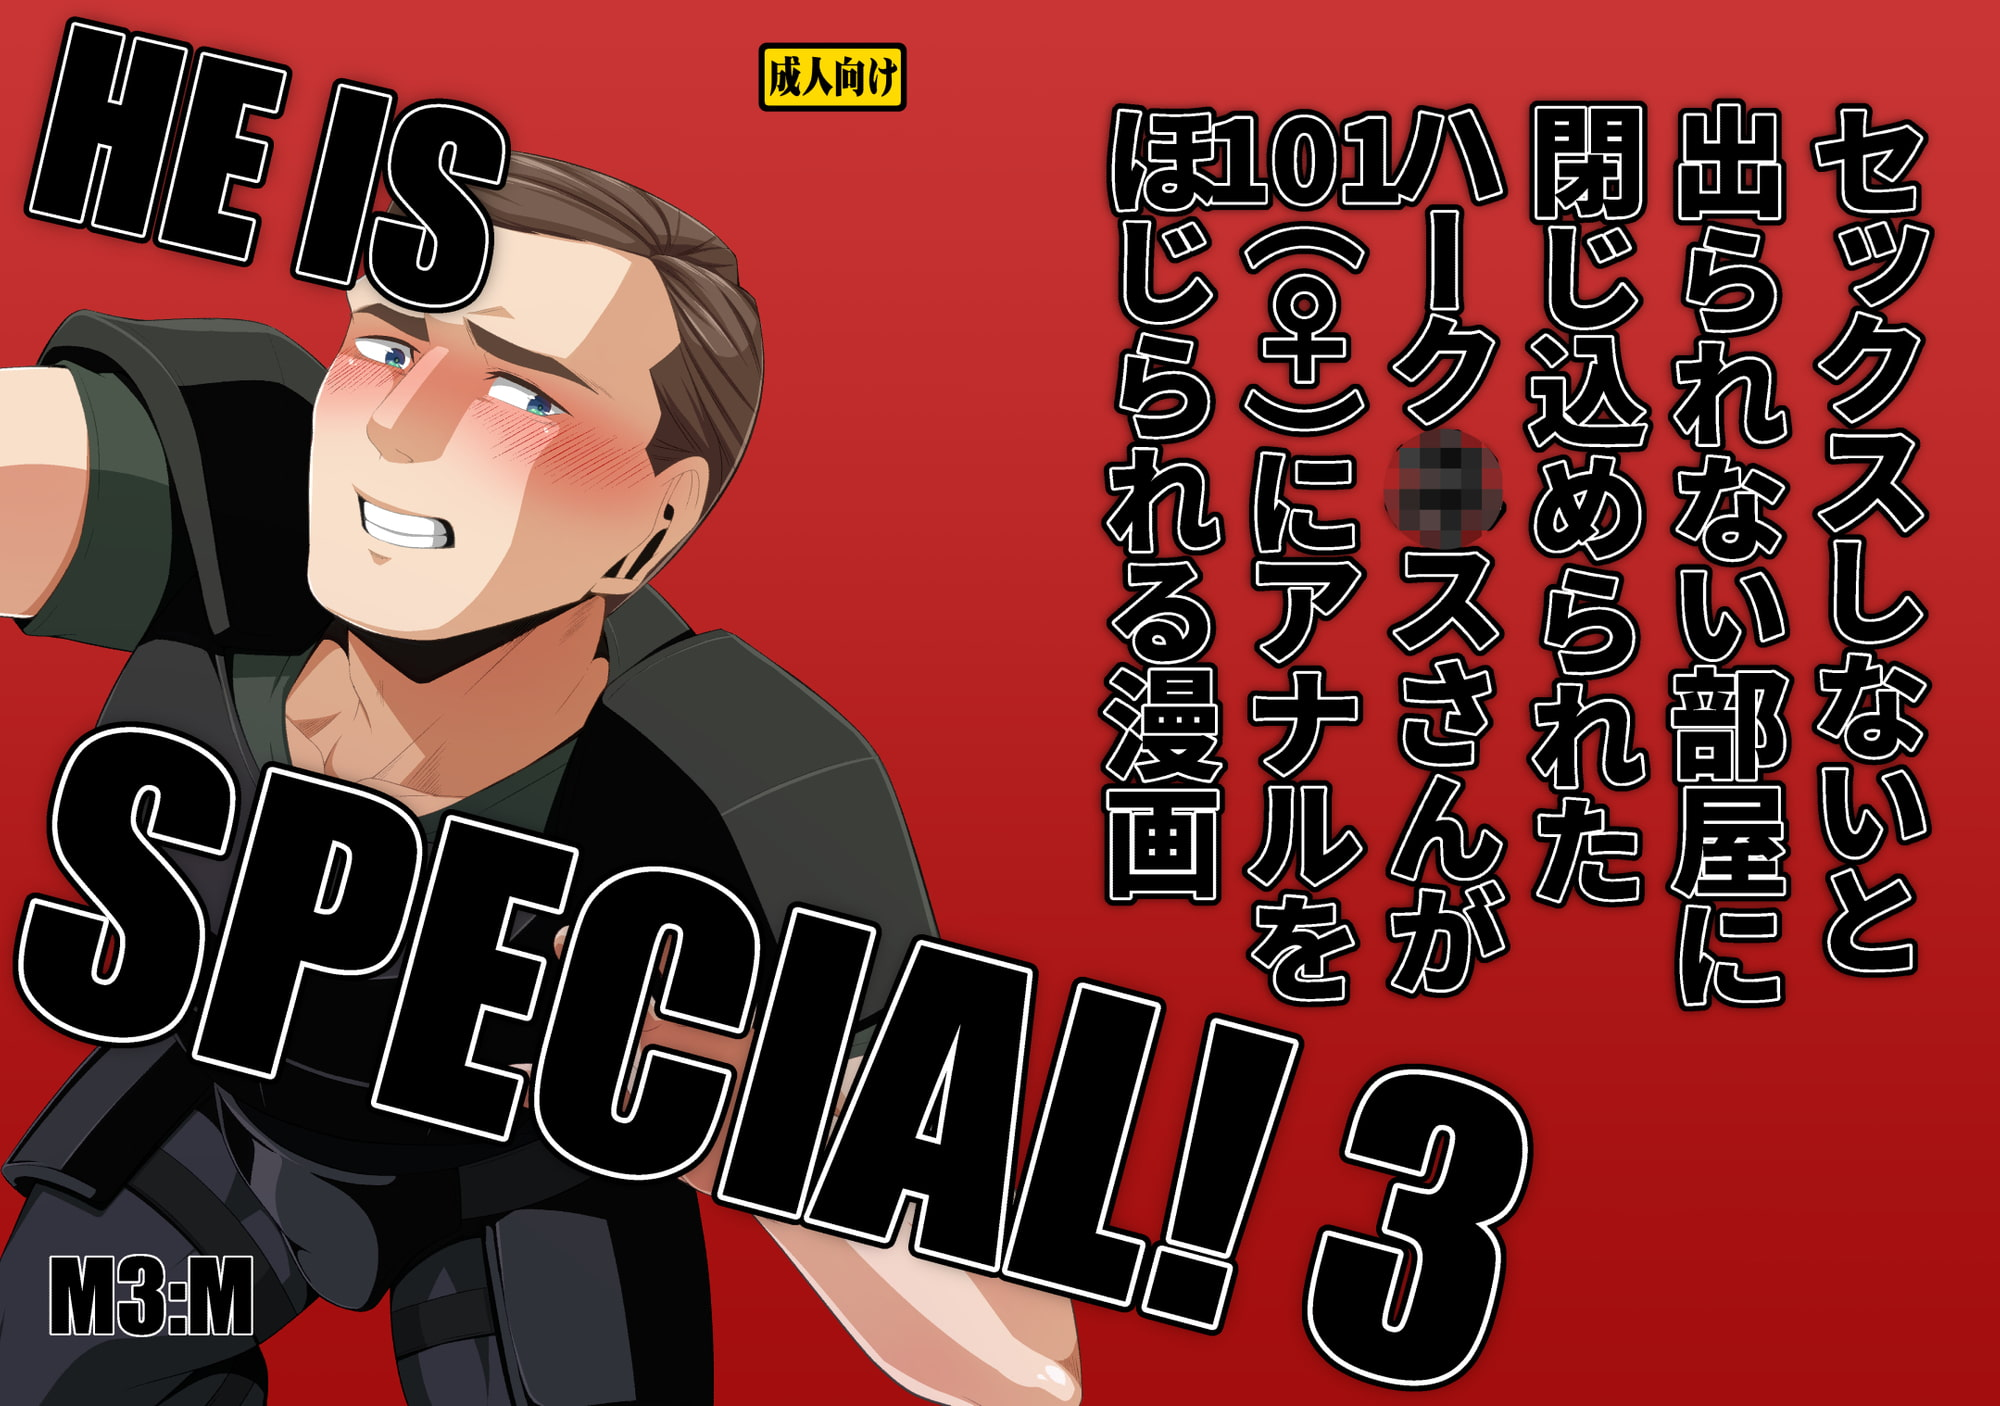 RJ315951 HE IS SPECIAL 3 [20210130]